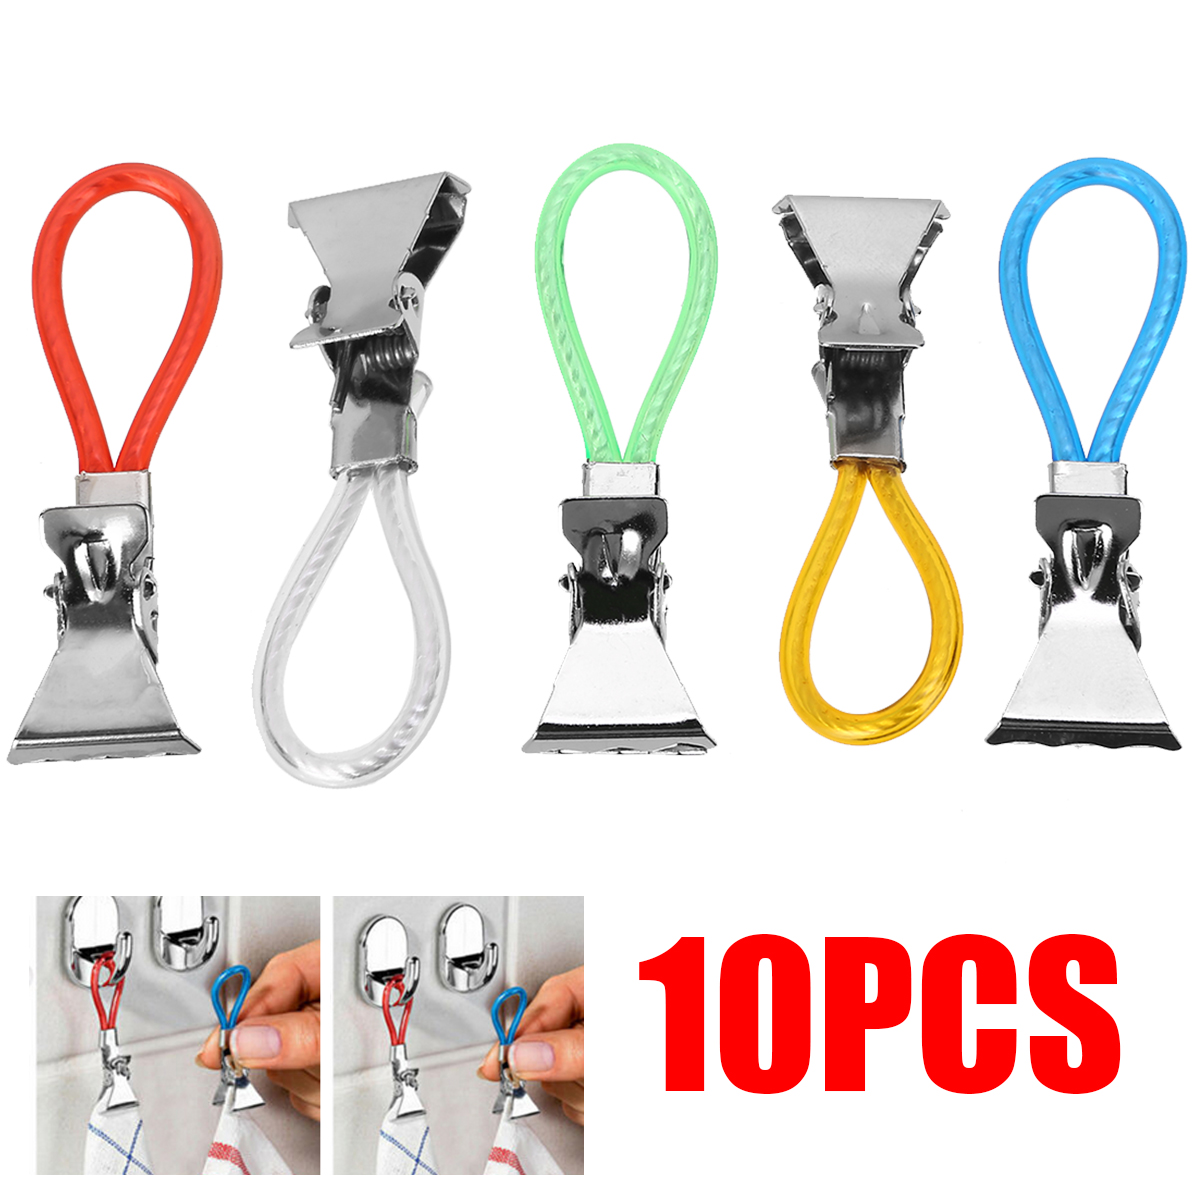 10Pcs Multi Metal Towel Clips Useful Kitchen Beach Towel Clips Clamps Set Reusable Practical Household Tool